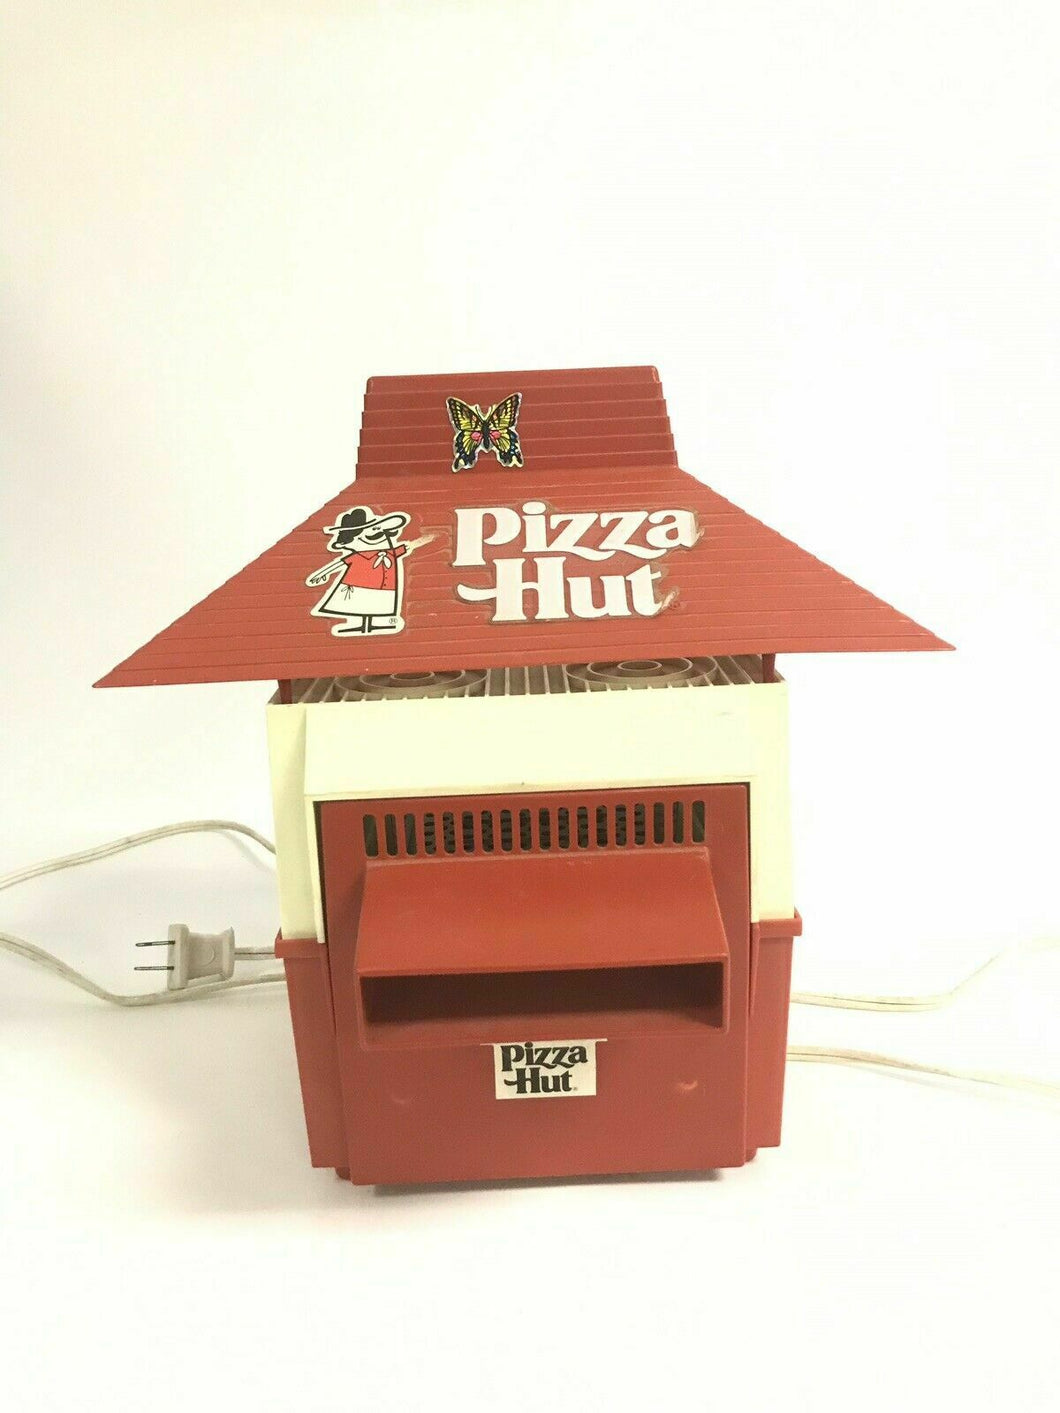 Vintage Coleco Pizza Hut Electric Baking Oven-3697